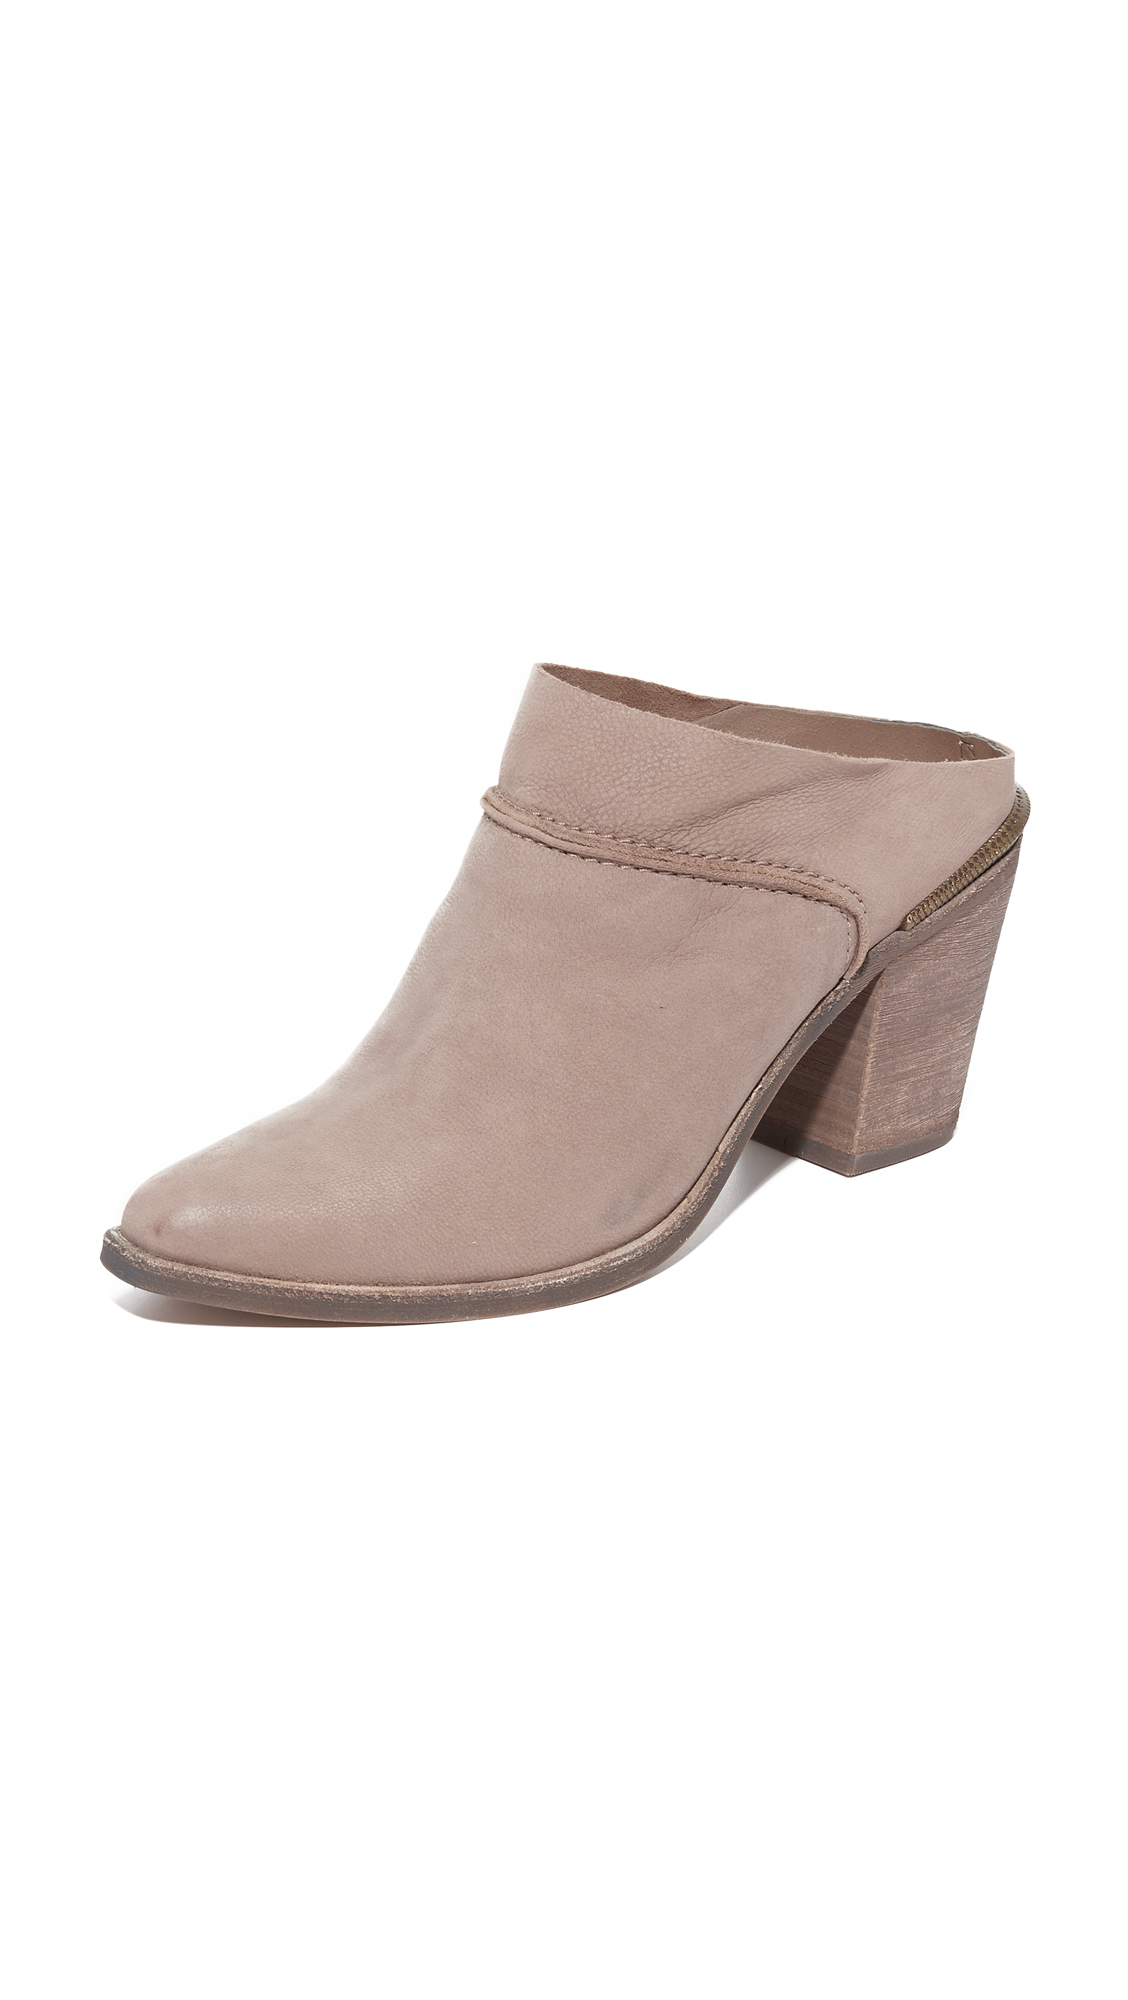 Dolce Vita Wes Mules - Light Taupe at Shopbop